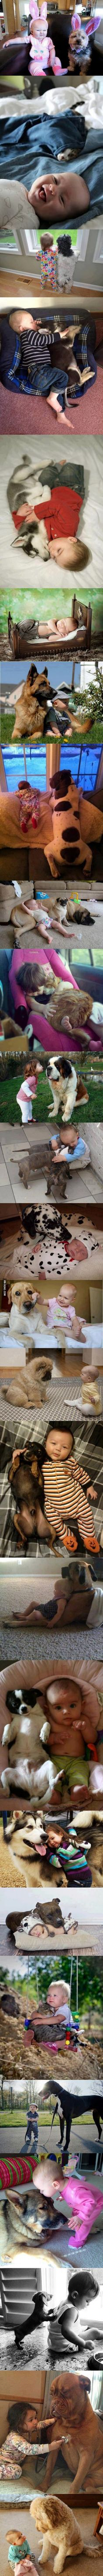 Adorable! The baby and the dog in the first pic look about 100% done with the ears ;)